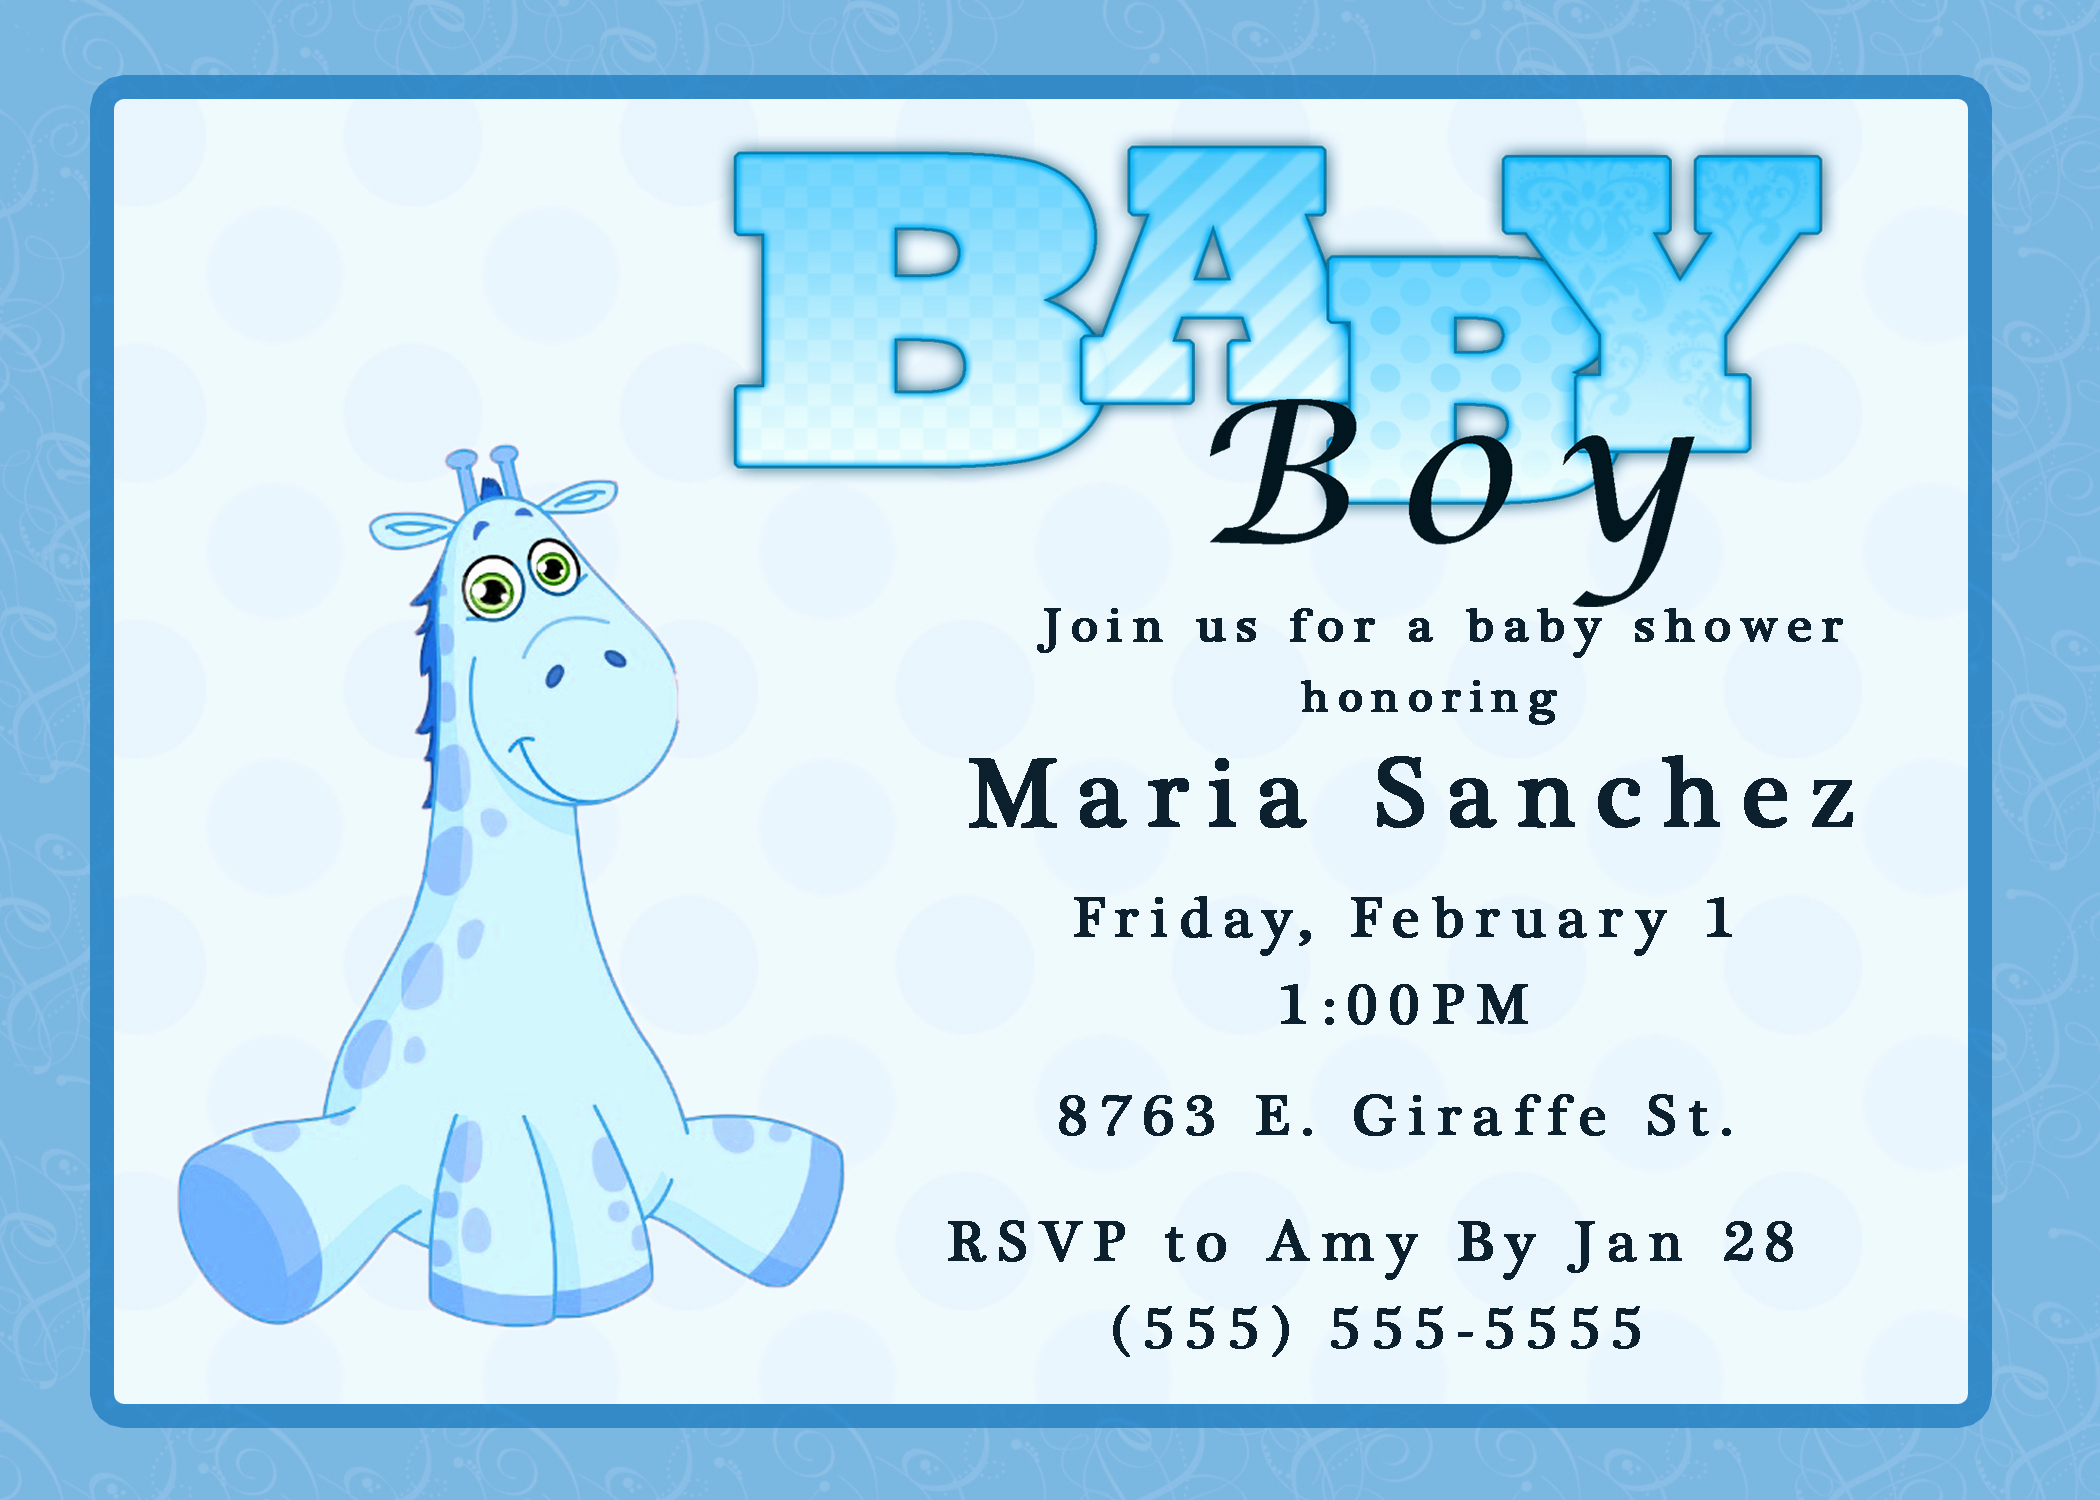 Baby Shower Invitation Templates Luxury Baby Shower Invitations